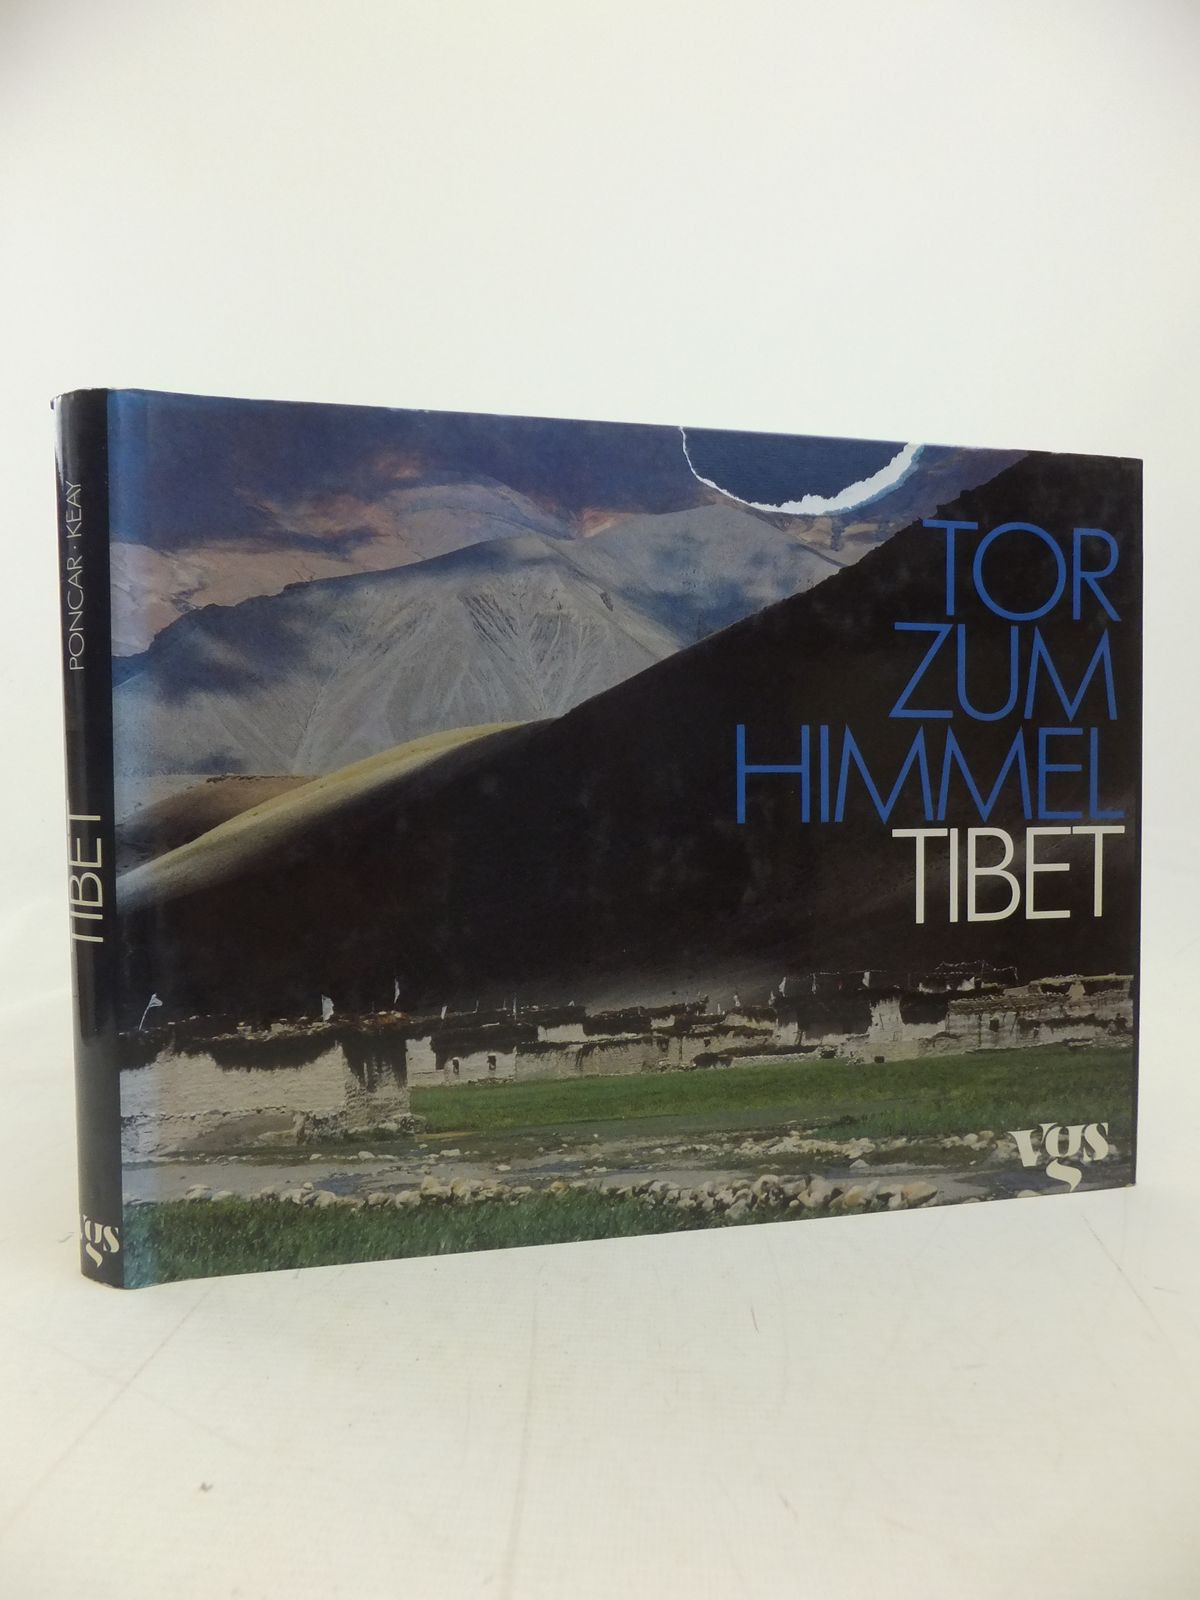 Photo of TOR ZUM HIMMEL TIBET written by Poncar, Jaroslav Keay, John published by Vgs (STOCK CODE: 2115040)  for sale by Stella & Rose's Books